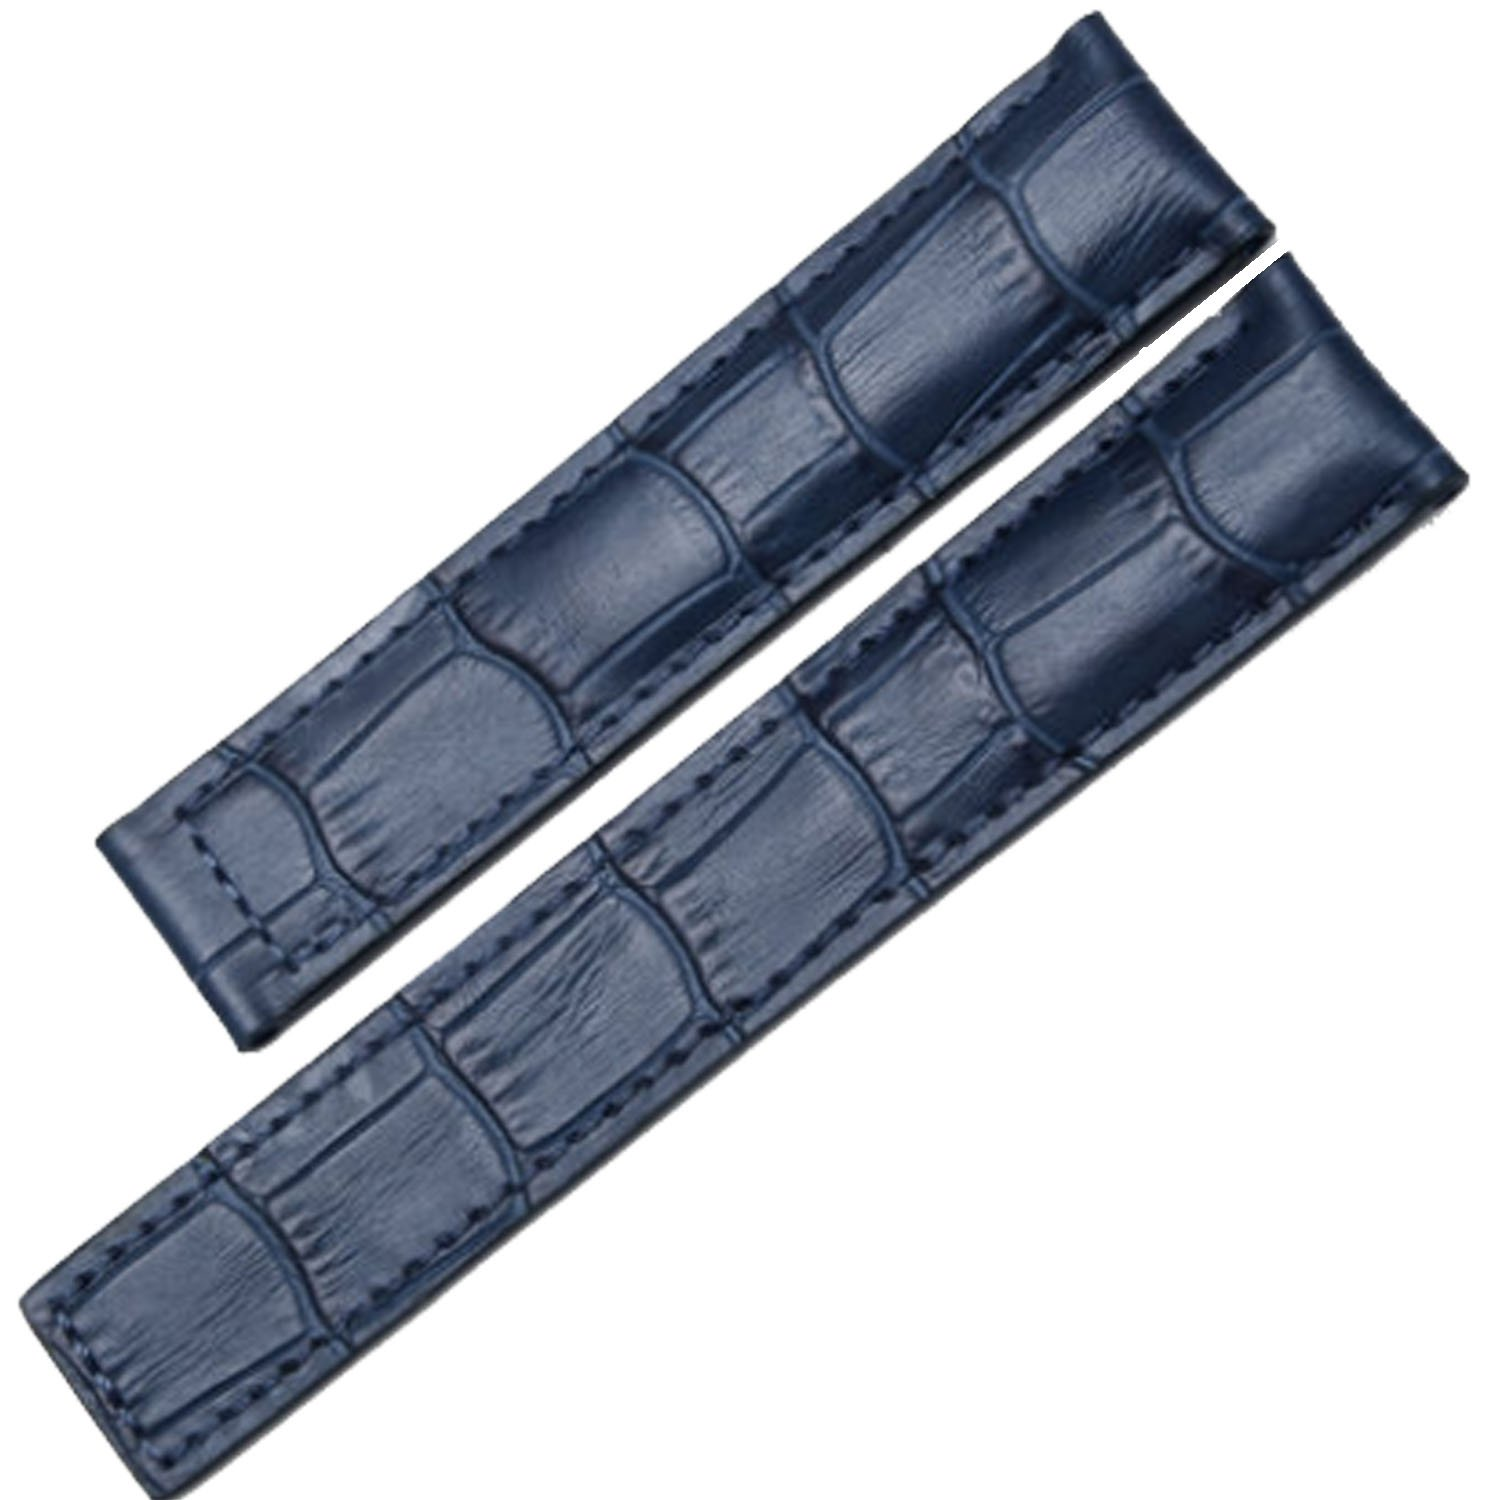 22 mmブルーアリゲーターエンボスDeployment Leather Watch Strap Band for Deployment Clasp  B07174NV13